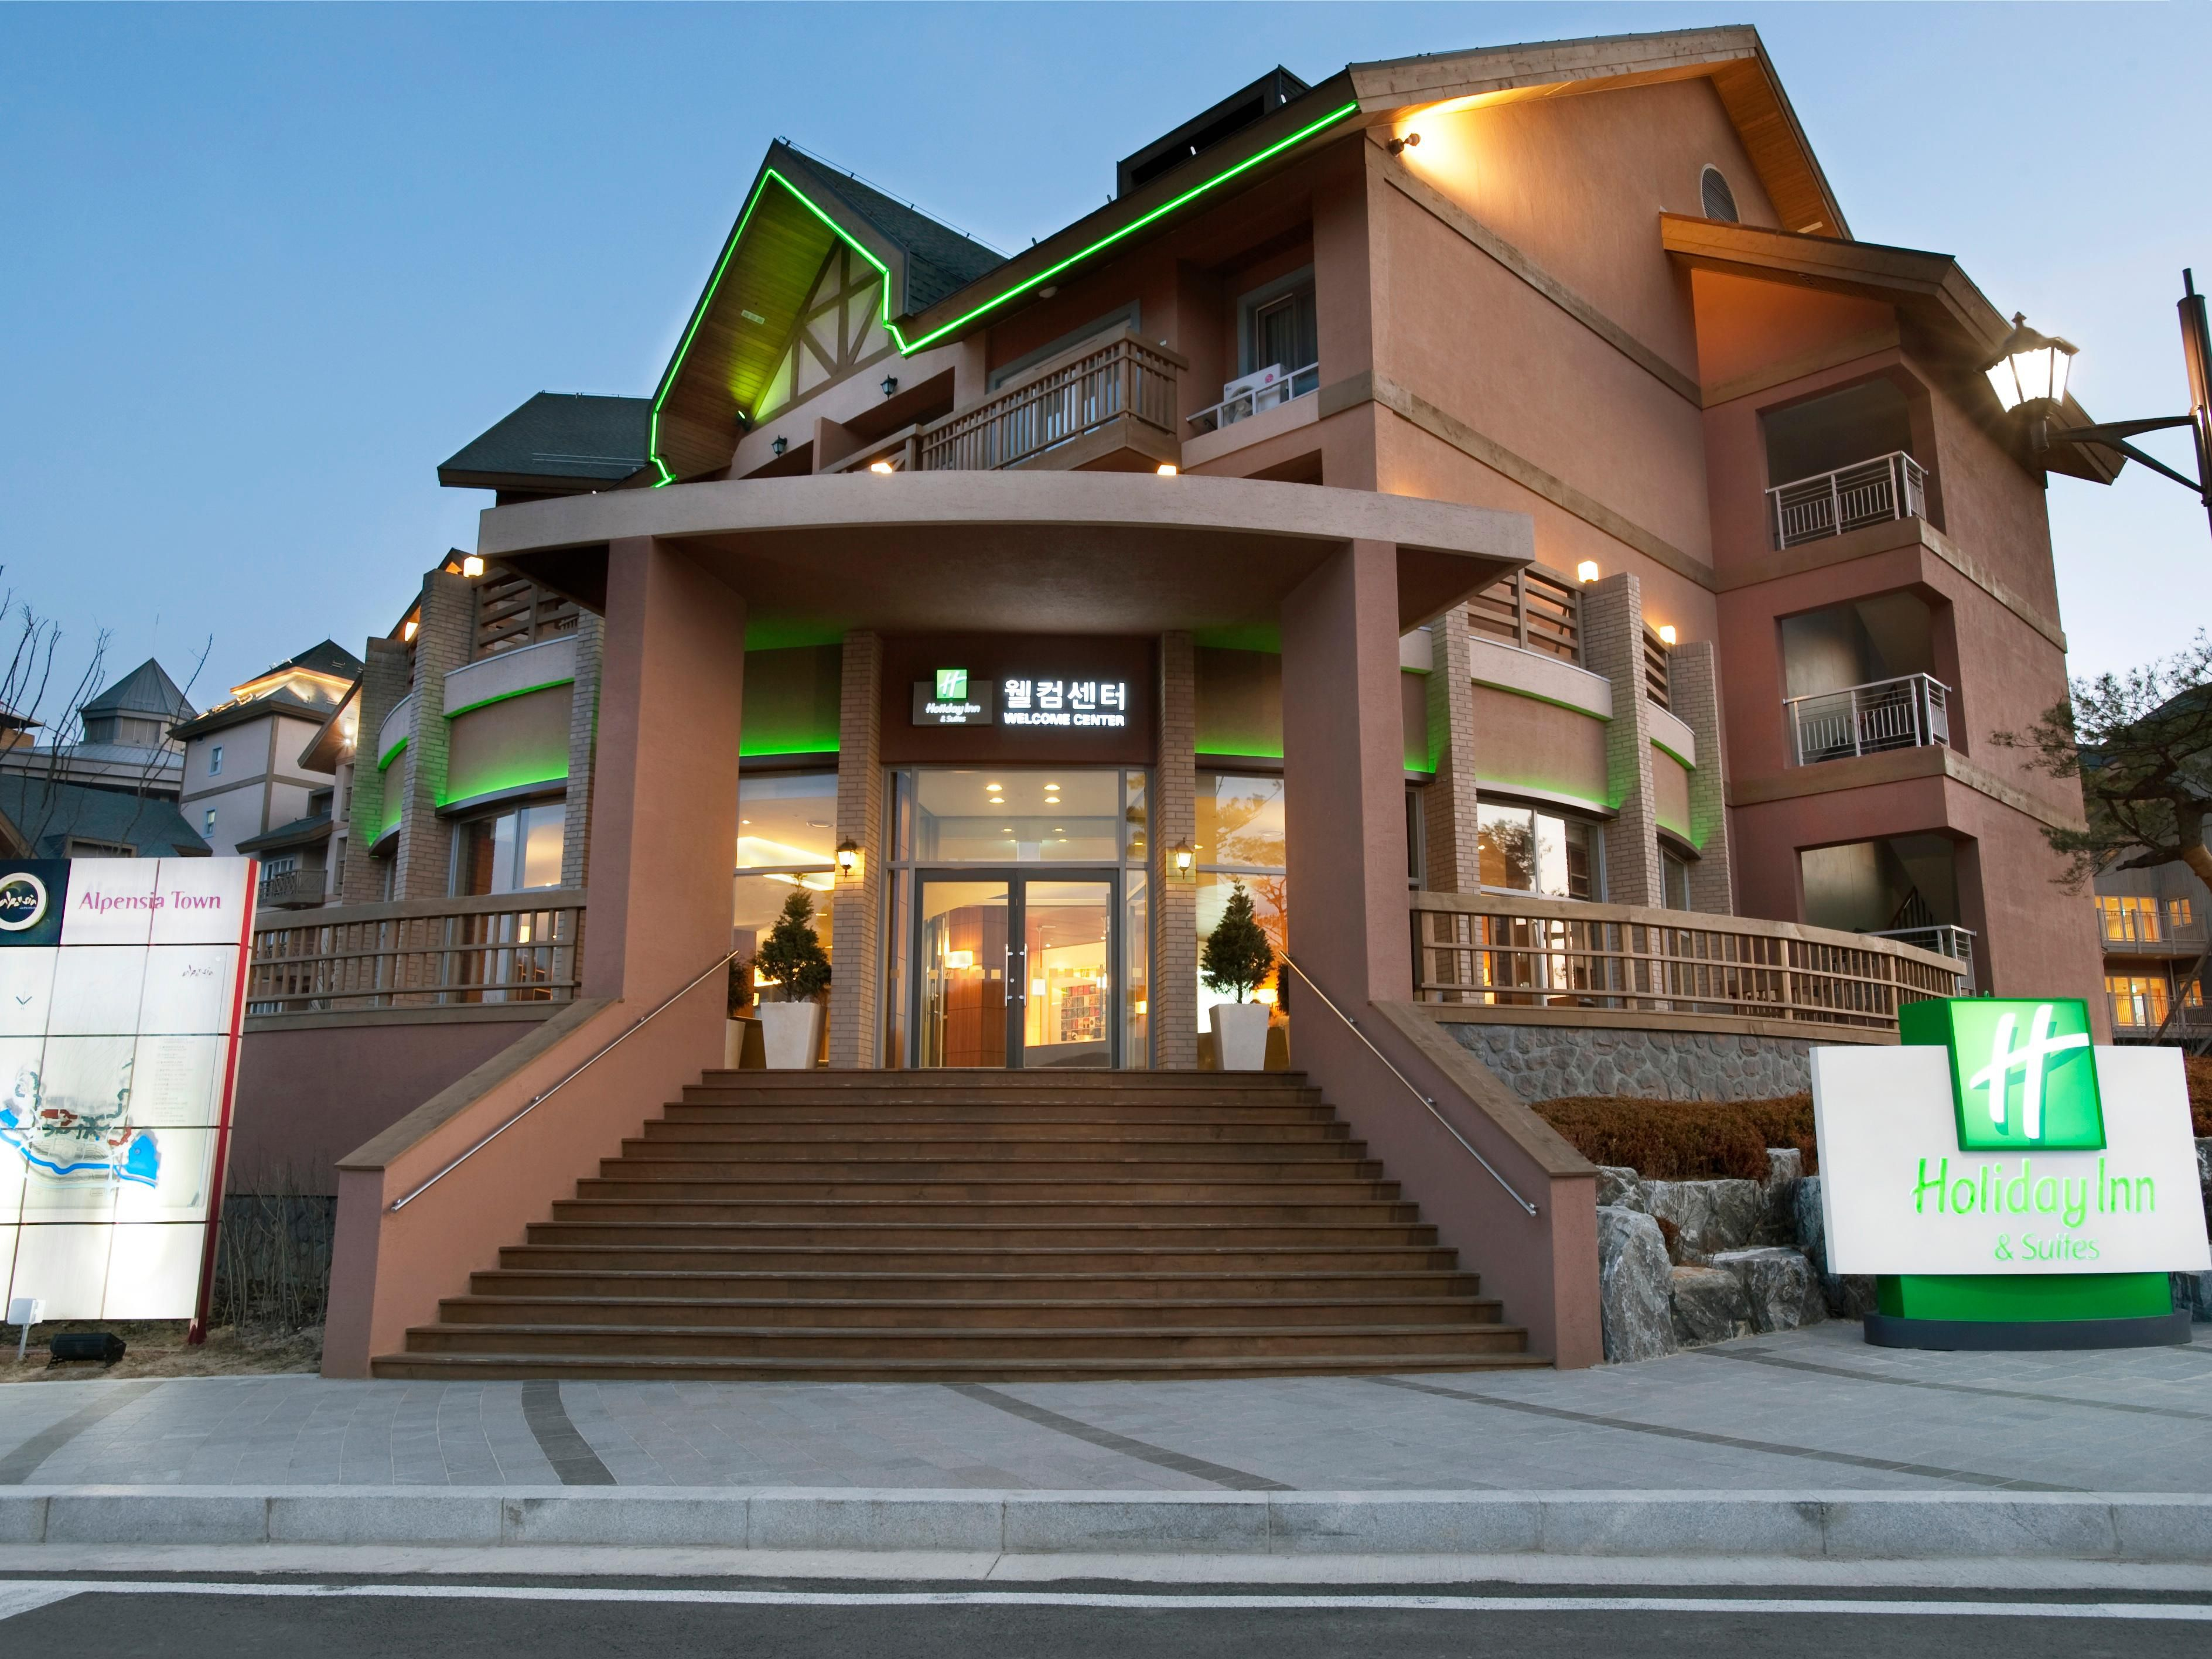 Holiday inn hotel suites alpensia pyeongchang suites for Hotel hotel hotel